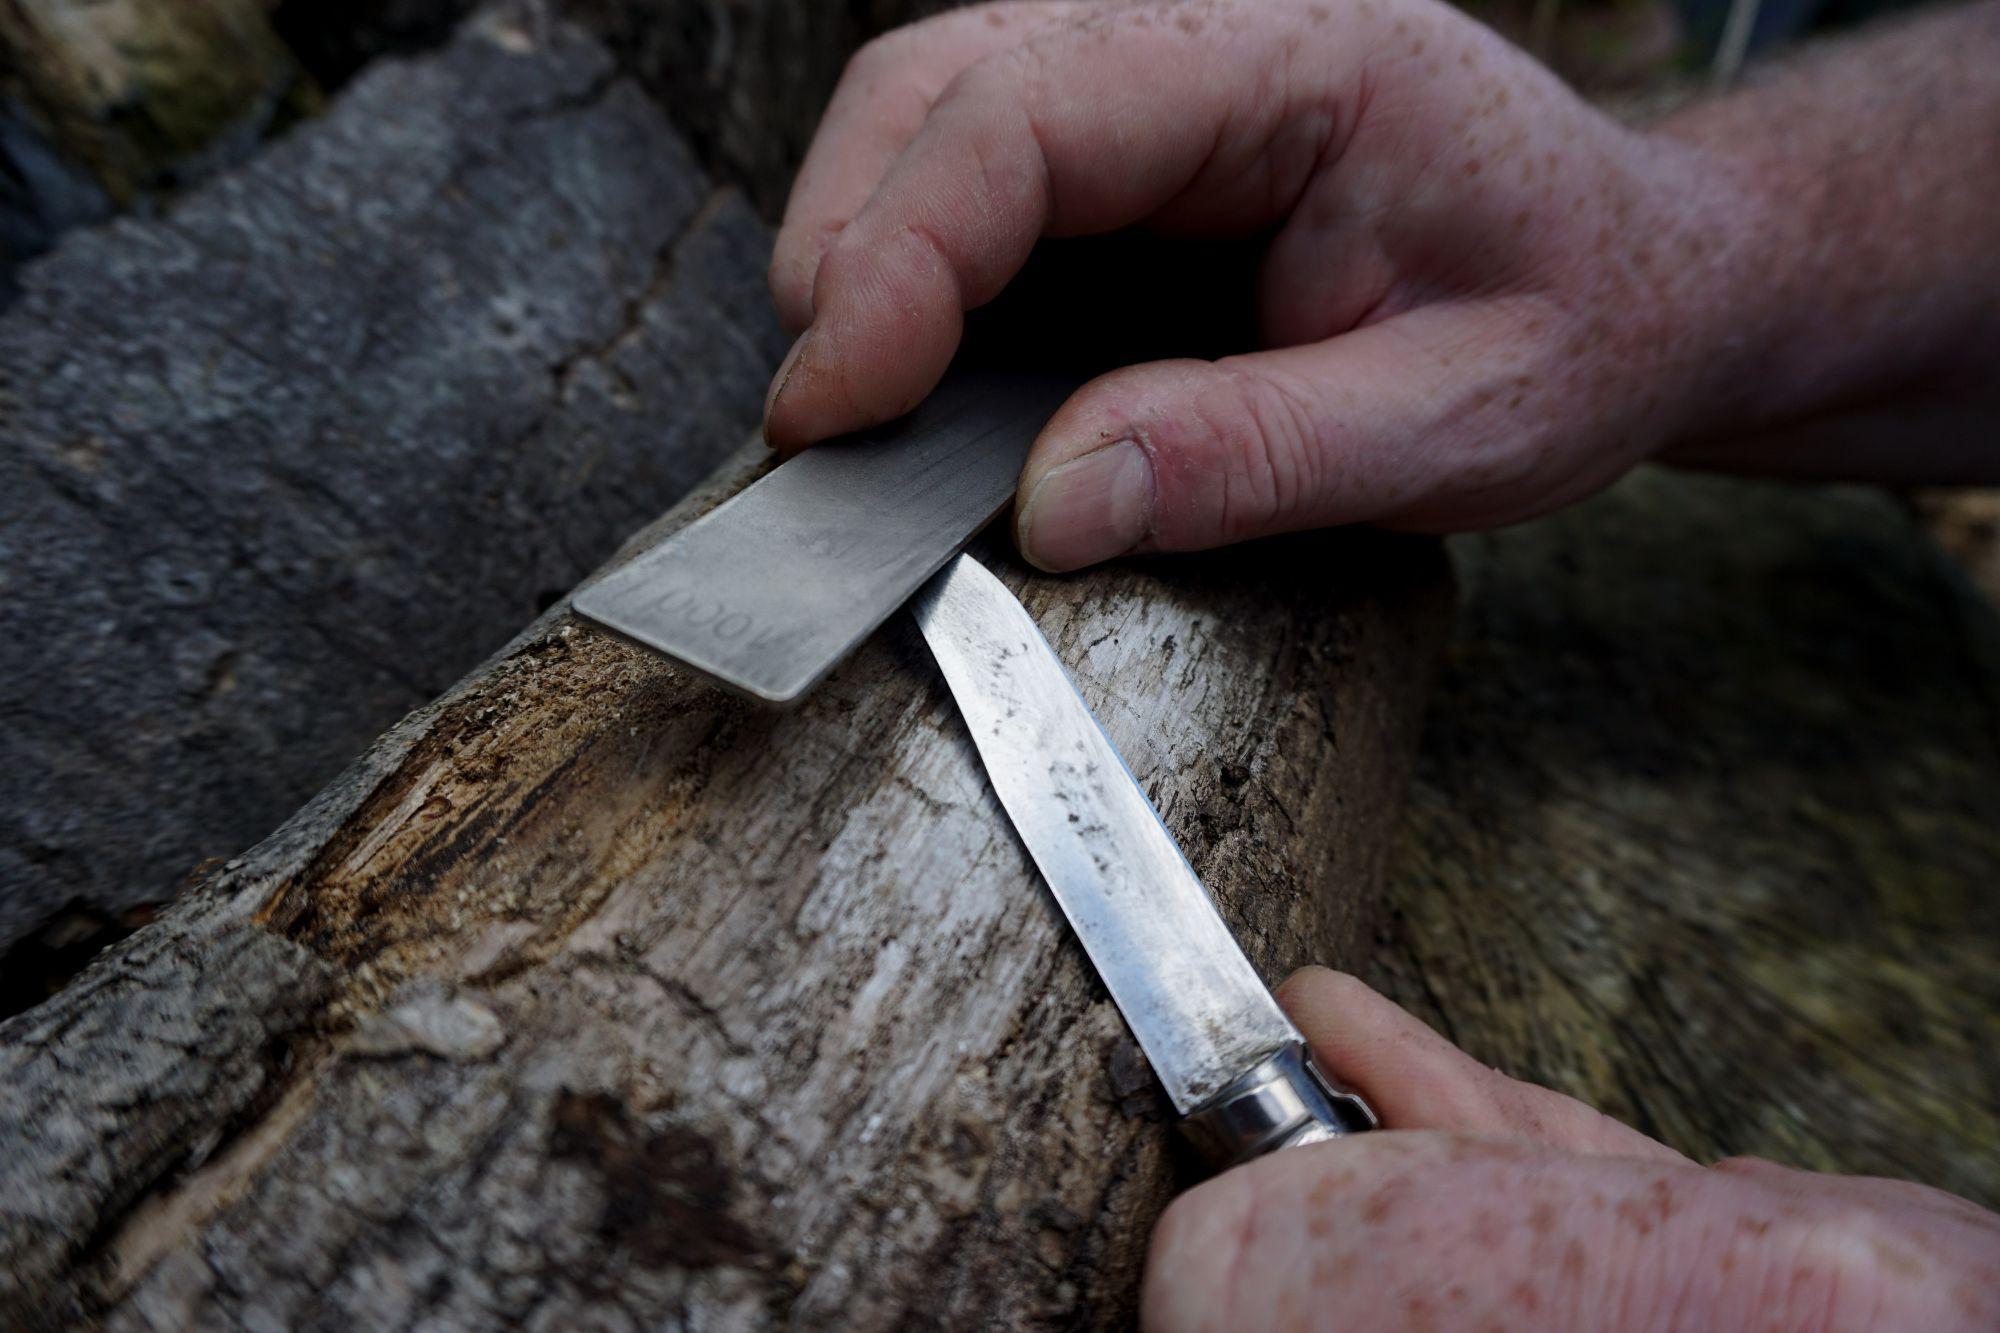 Sharpening the Belly of the knife by pivoting the blade on it's spine